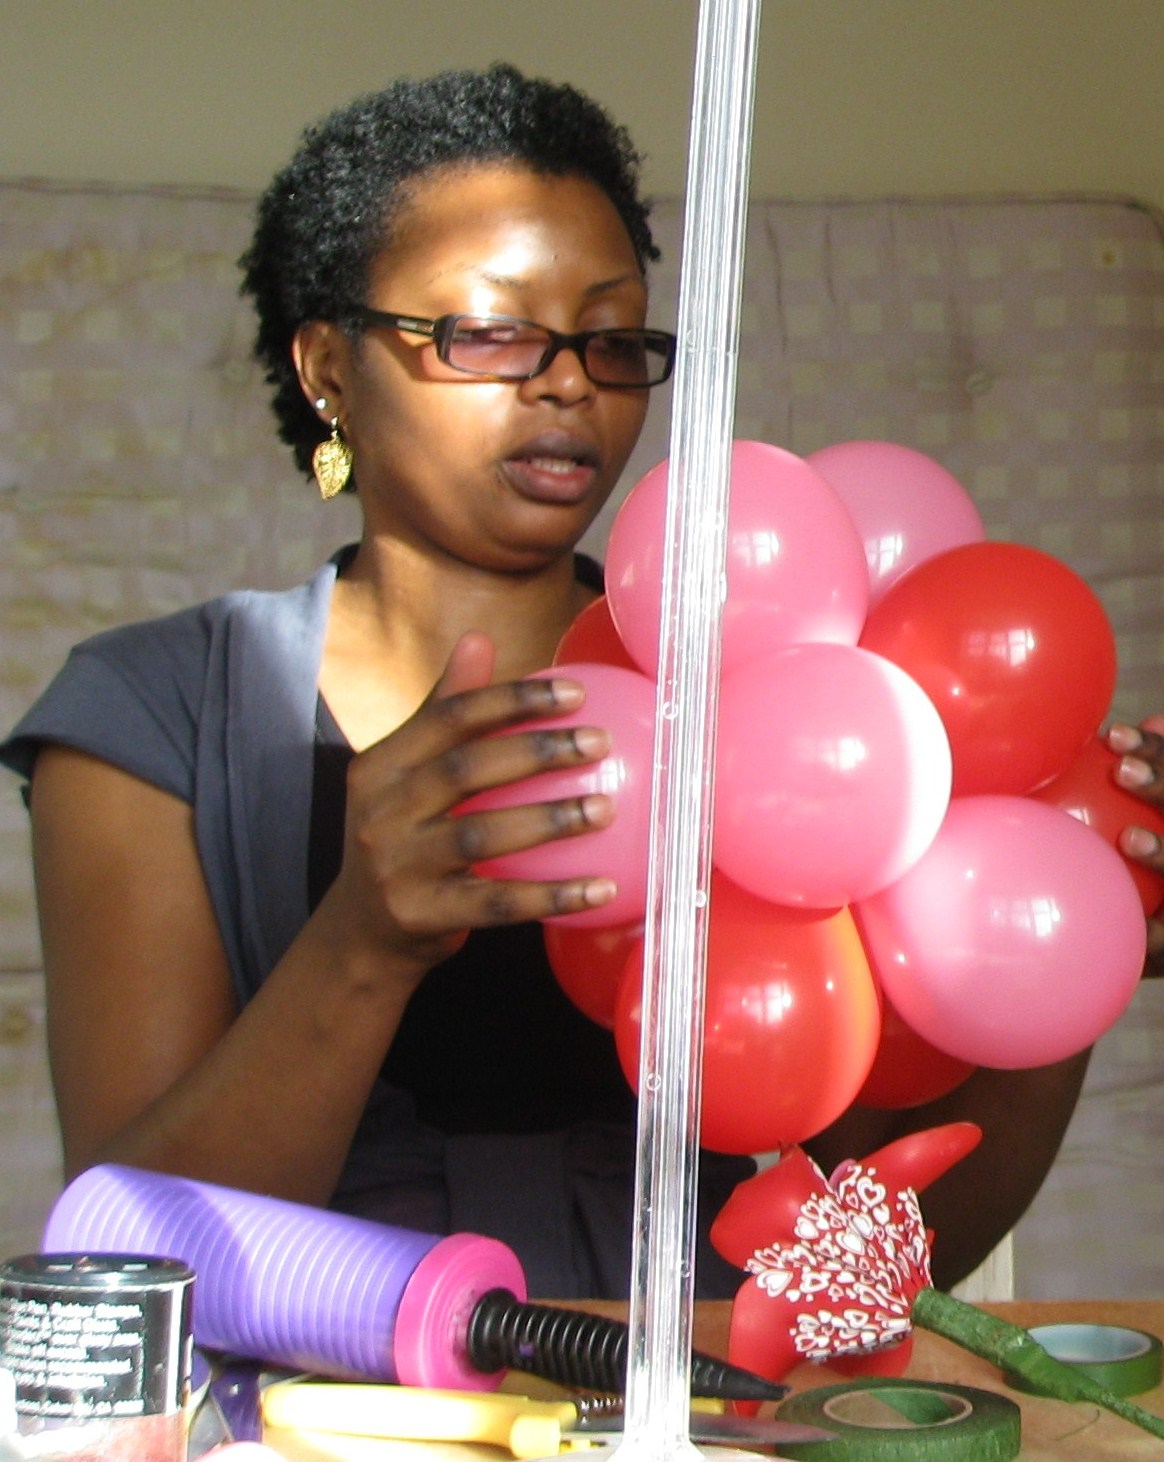 Balloon Decoration Course Fees